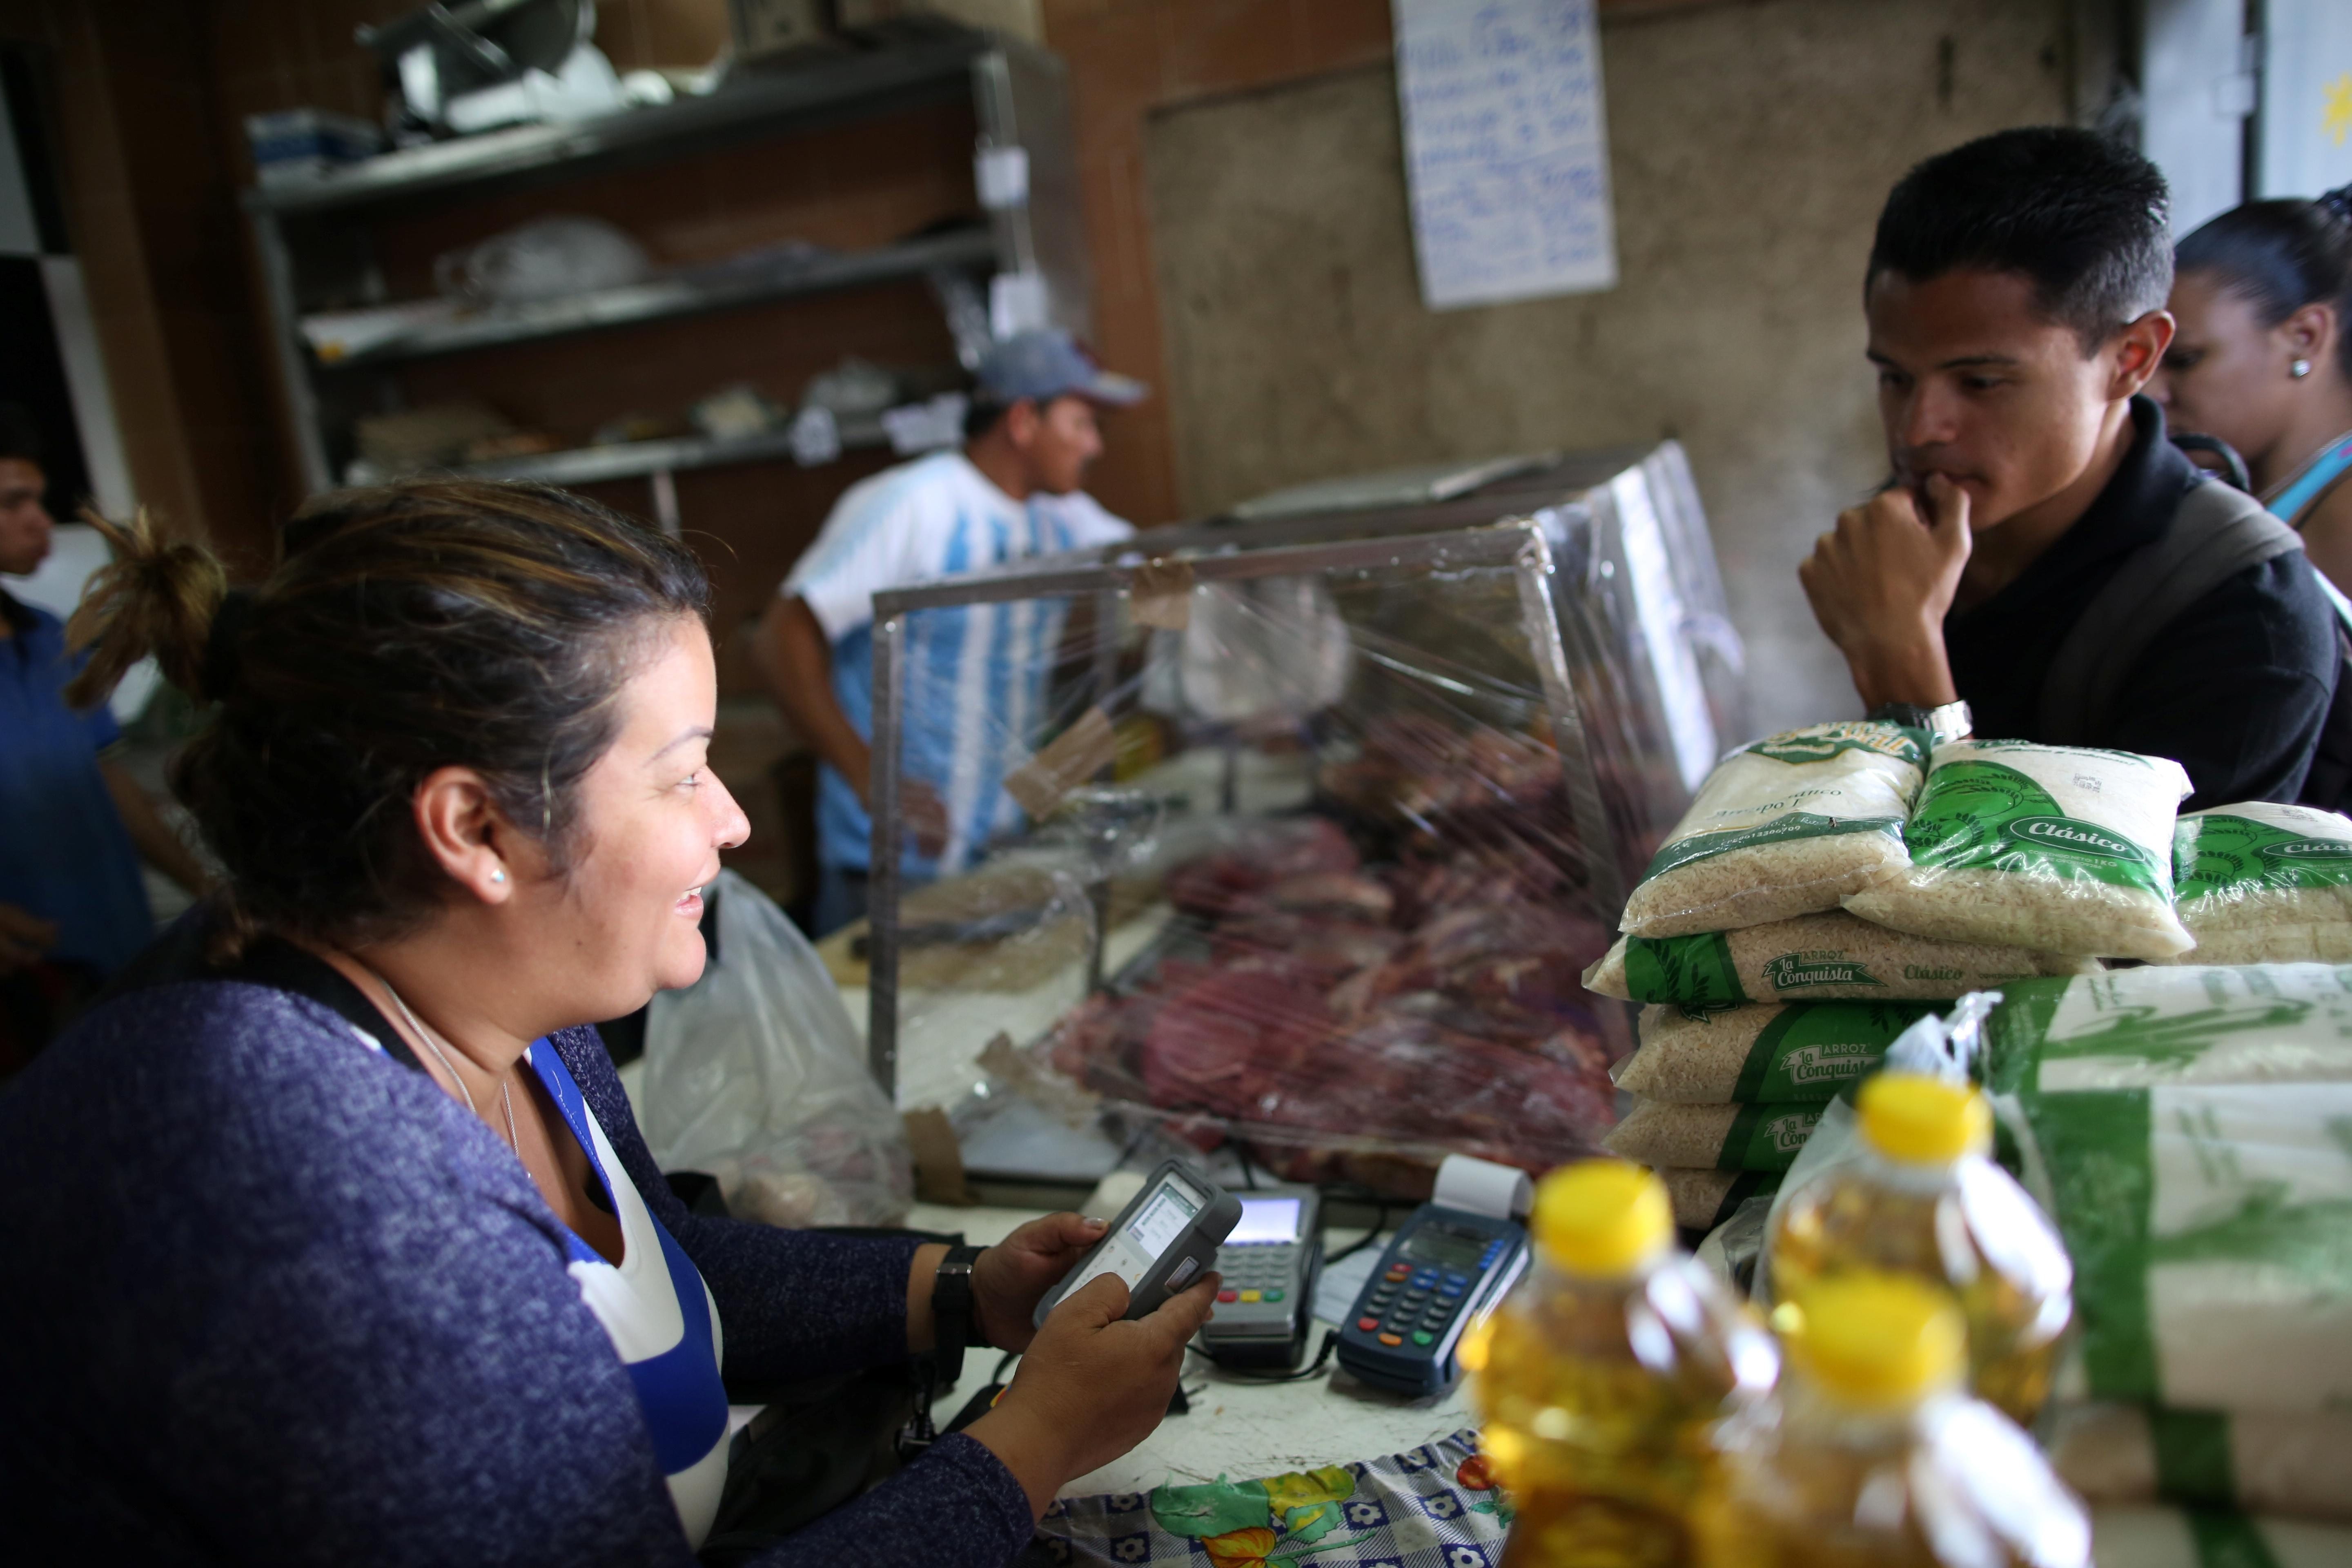 Venezuela September inflation accelerates to 52.2%: central bank